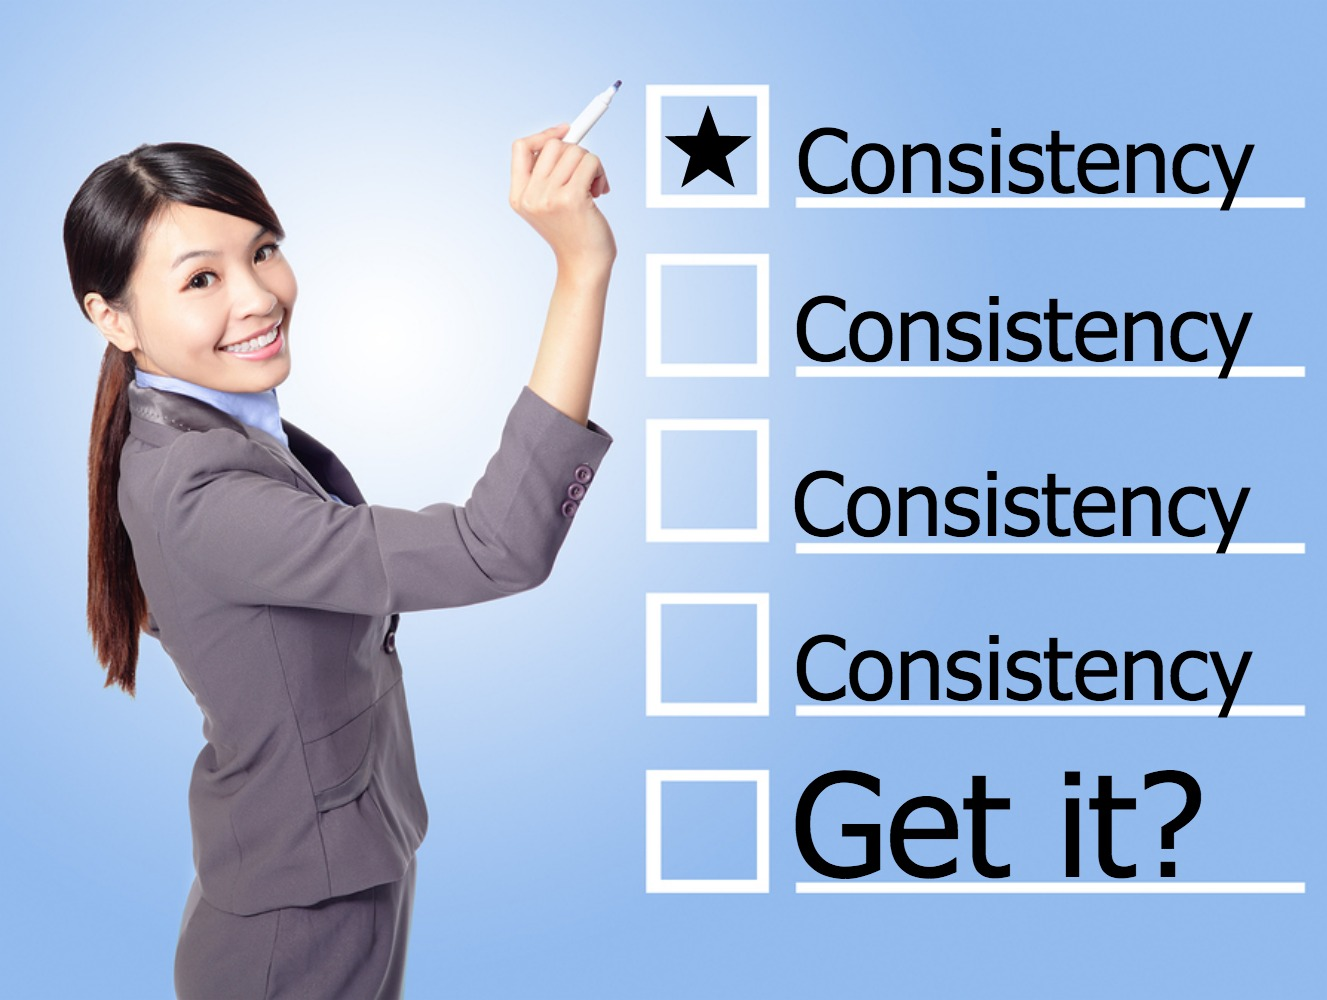 http://whyhowtofix.blogspot.com/2014/02/why-consistency-is-key-for-your-blog.html